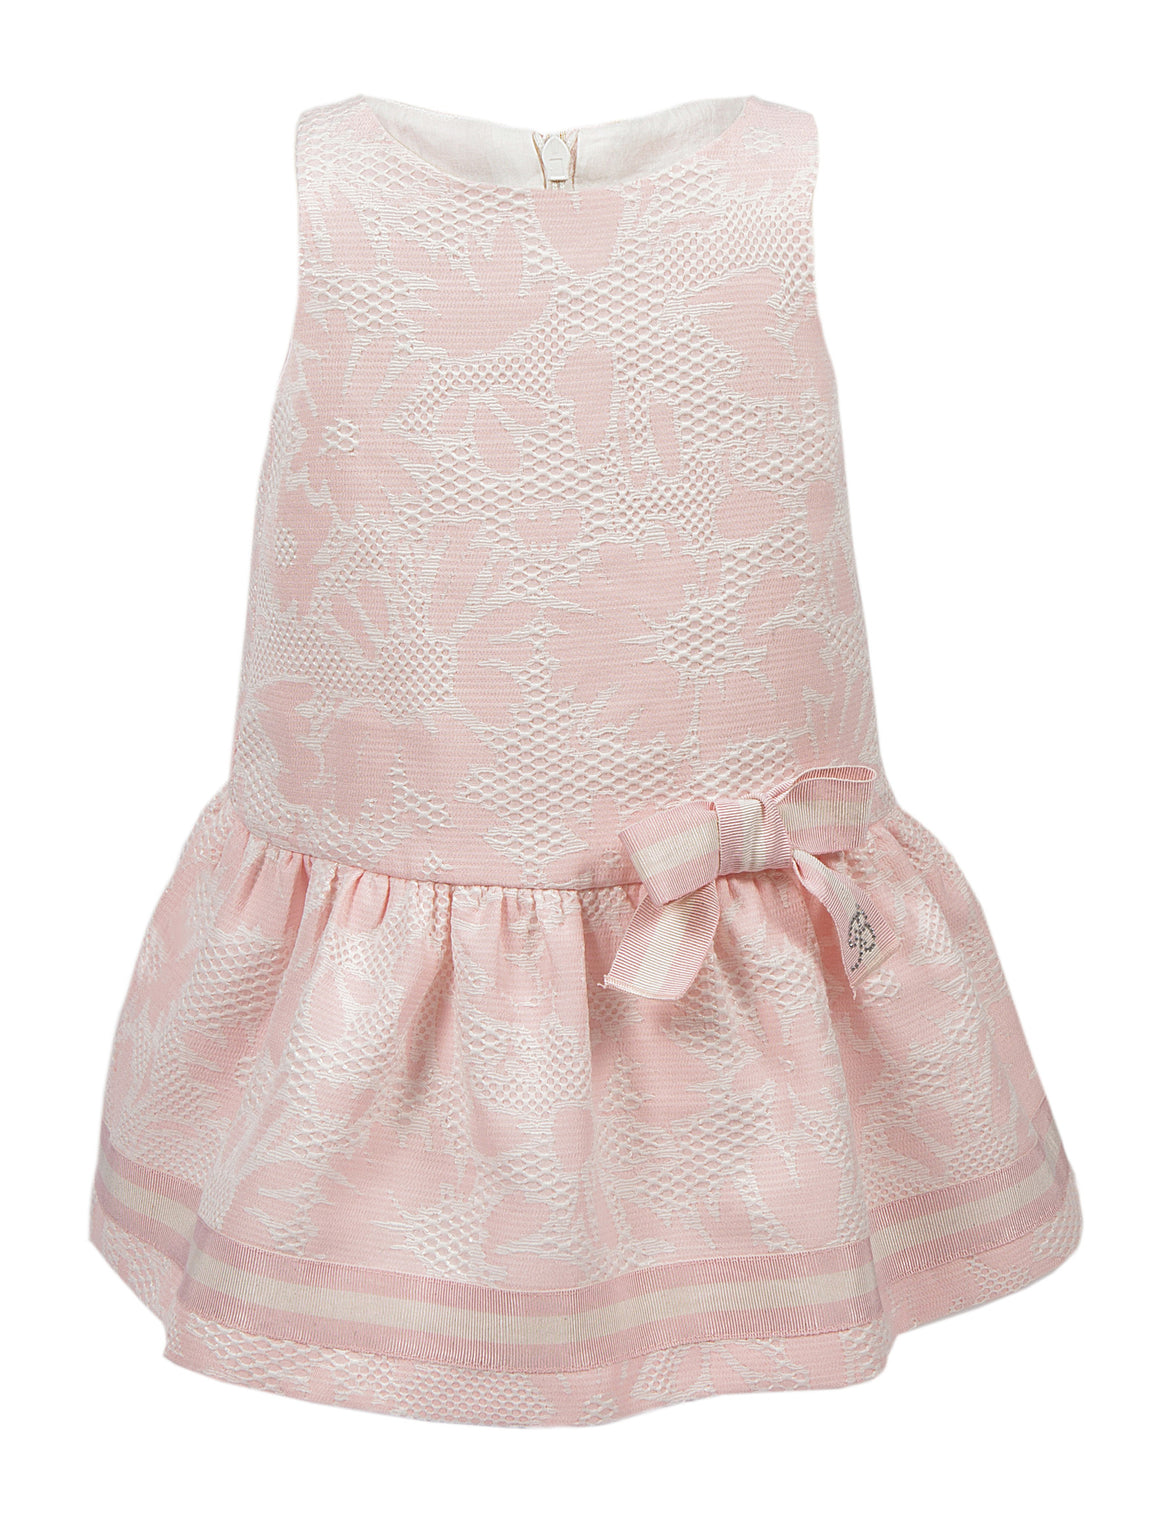 Balloon Chic - Girls Pink Sleeveless Party Dress | Party Dresses | Bon Bon Tresor